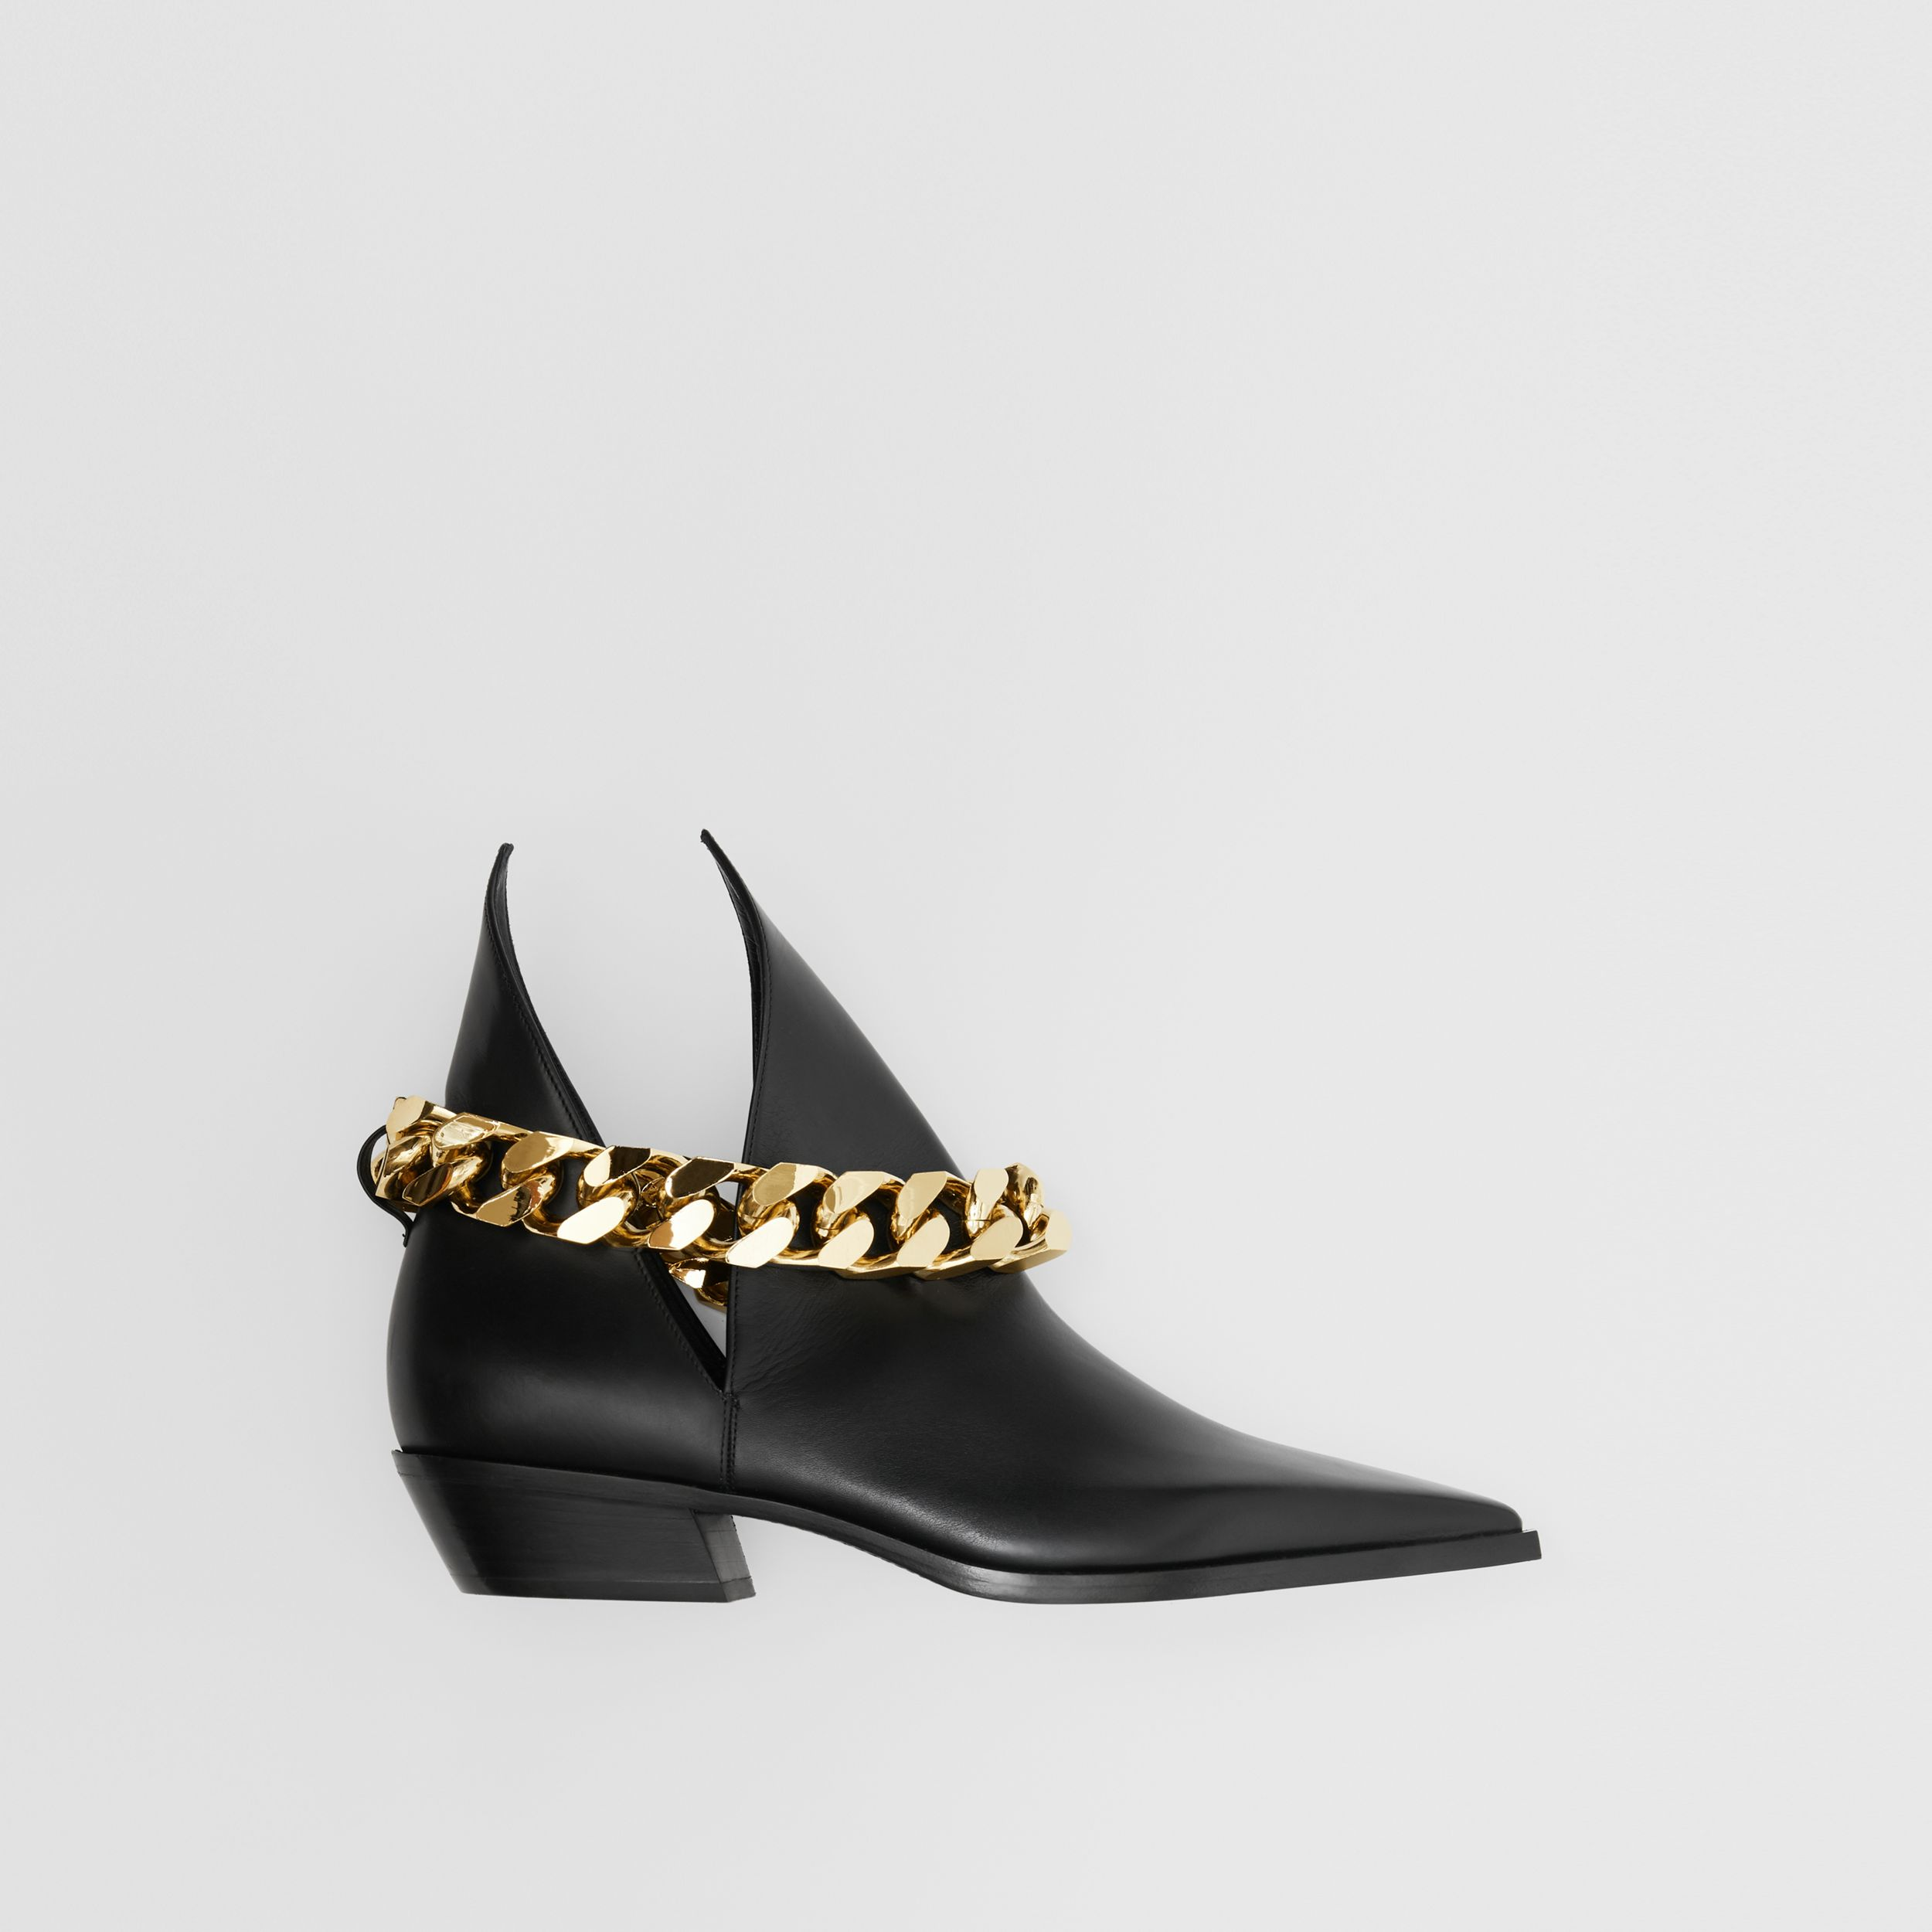 Chain Detail Leather Ankle Boots in Black - Women | Burberry - 1